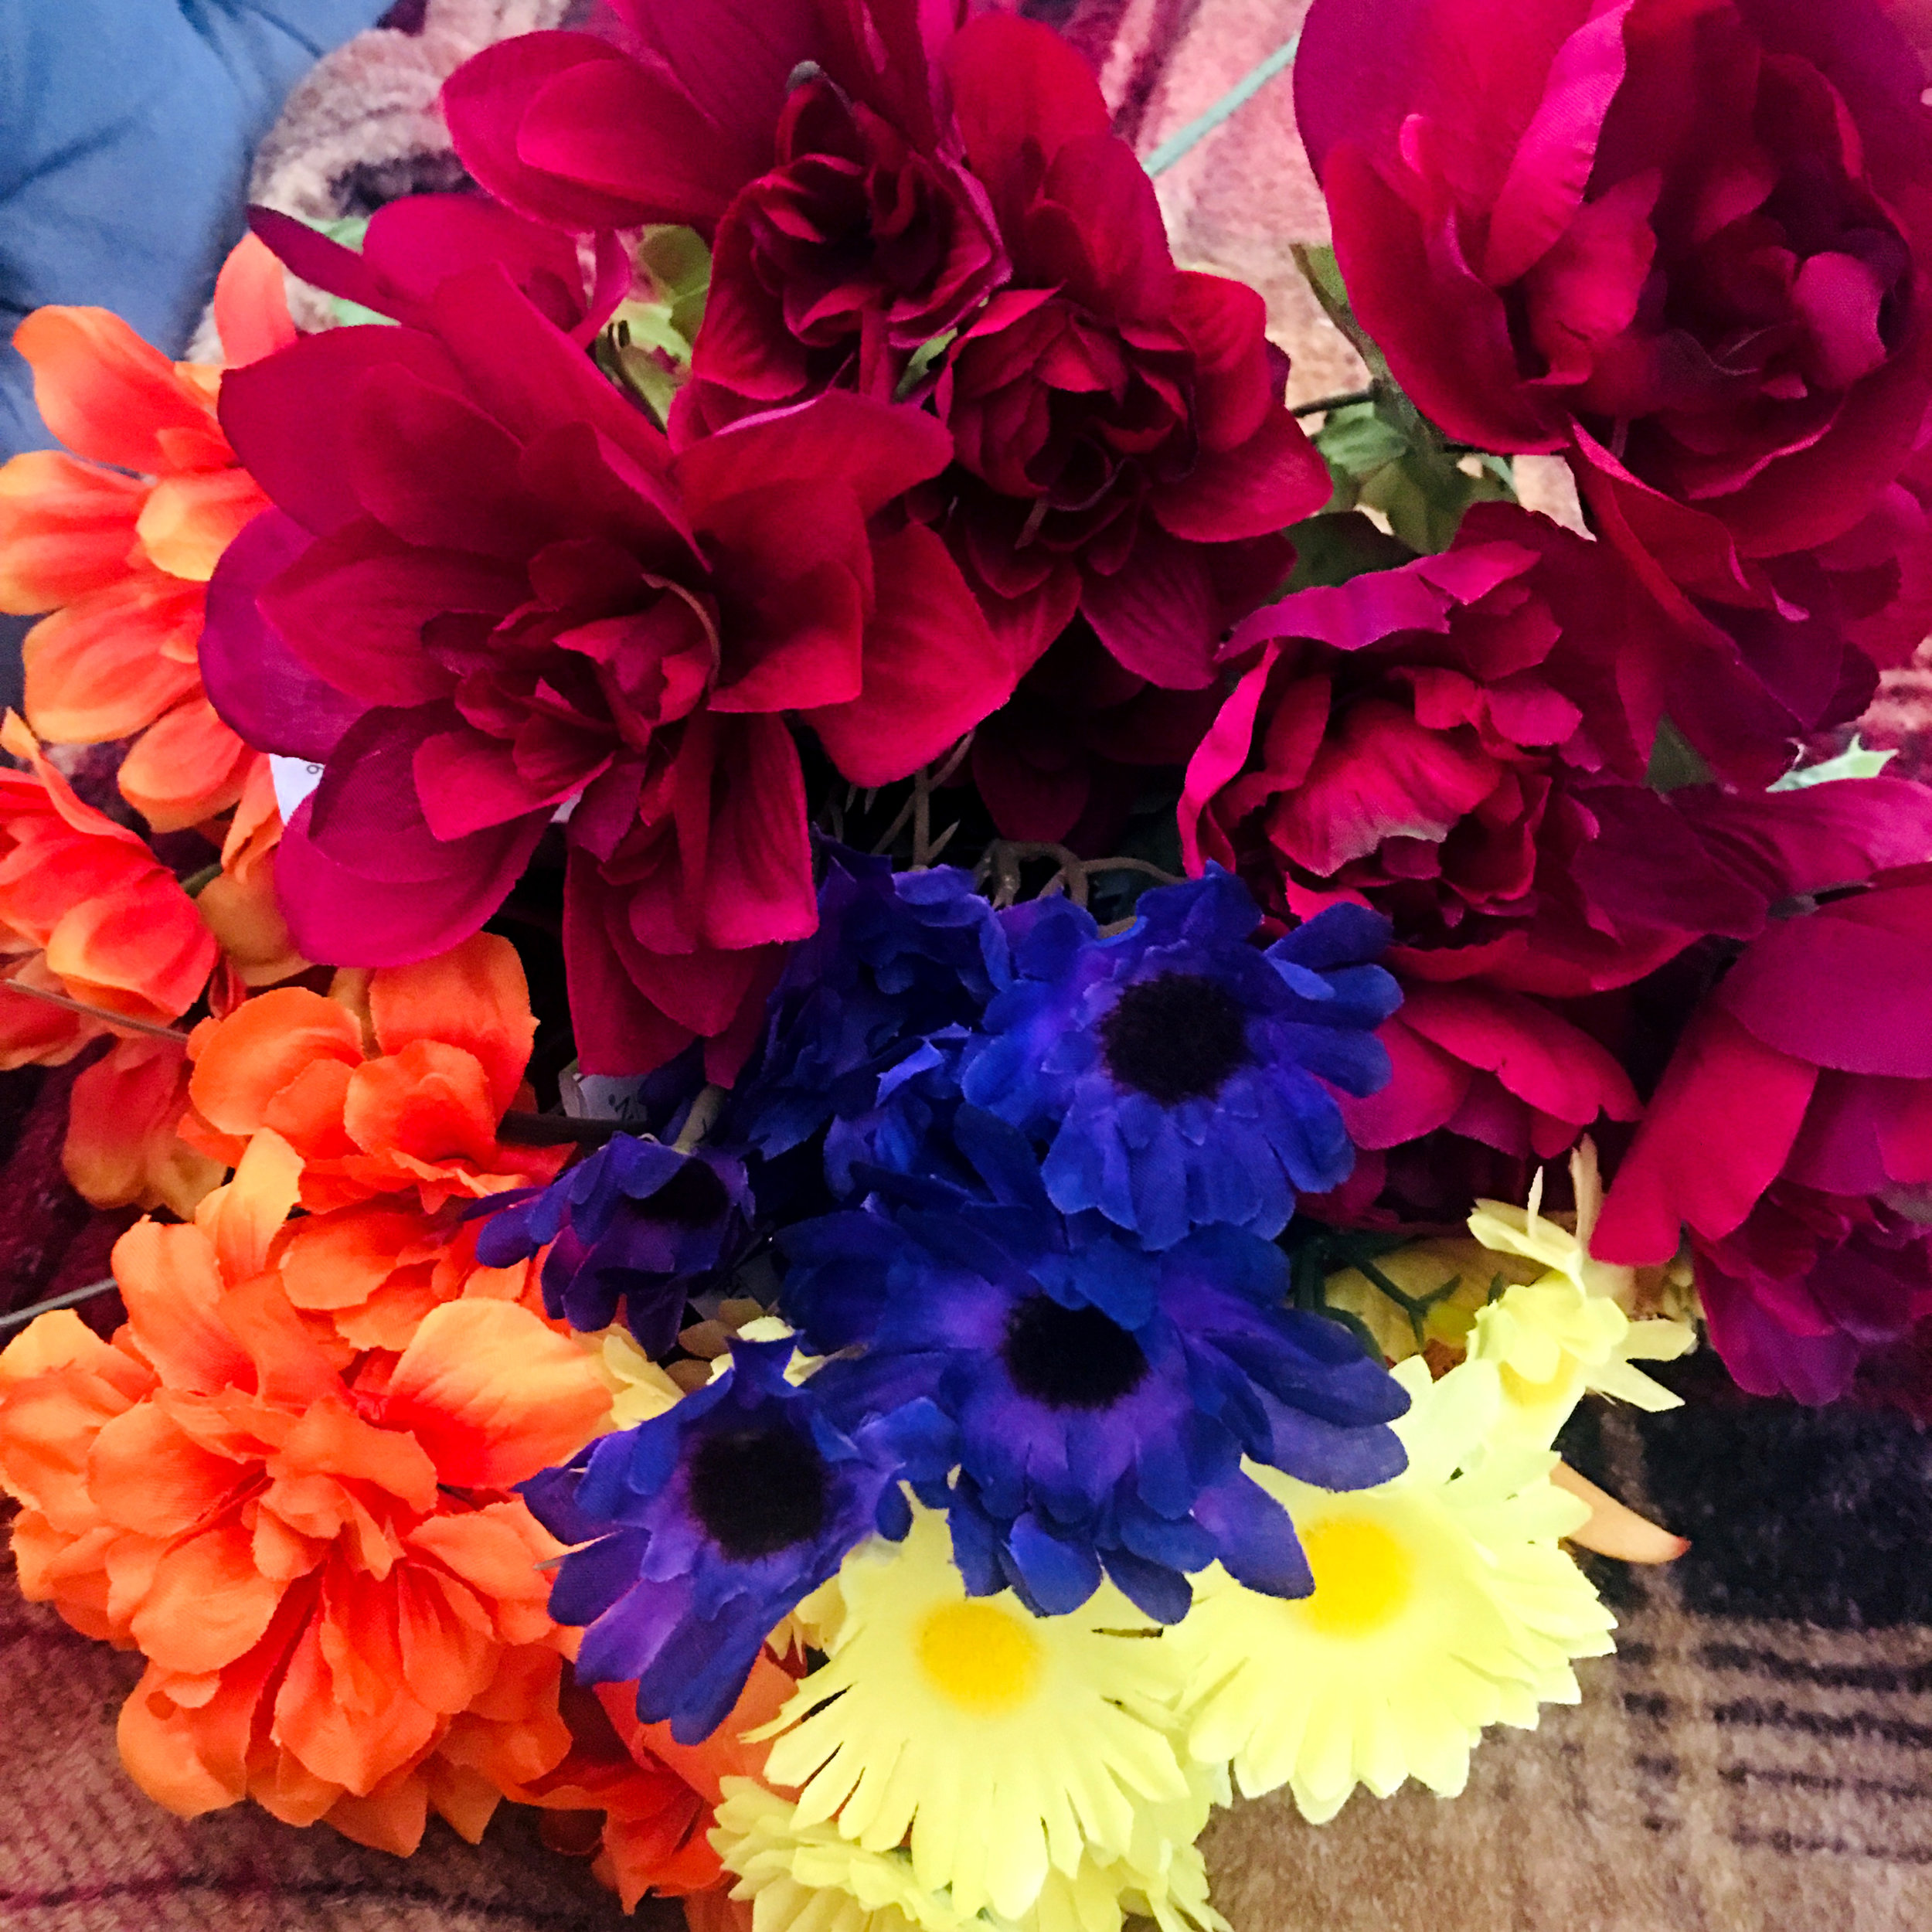 fall florals at dollar tree